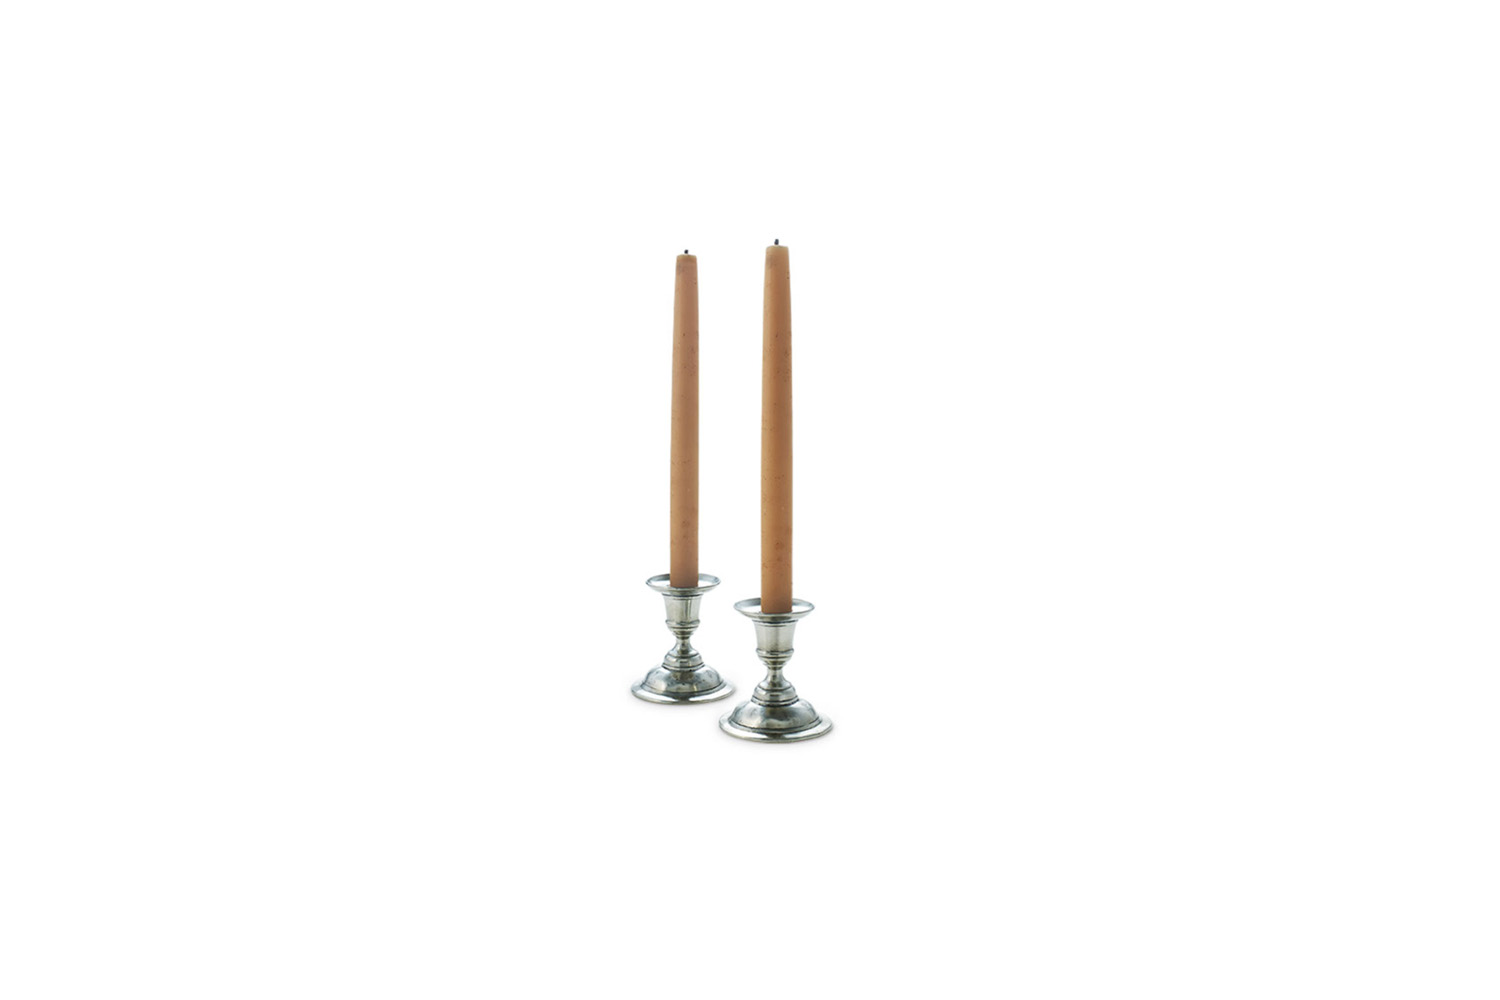 the match pewter martina candlestick holder pair is \$\1\29 at neiman marcus. 20